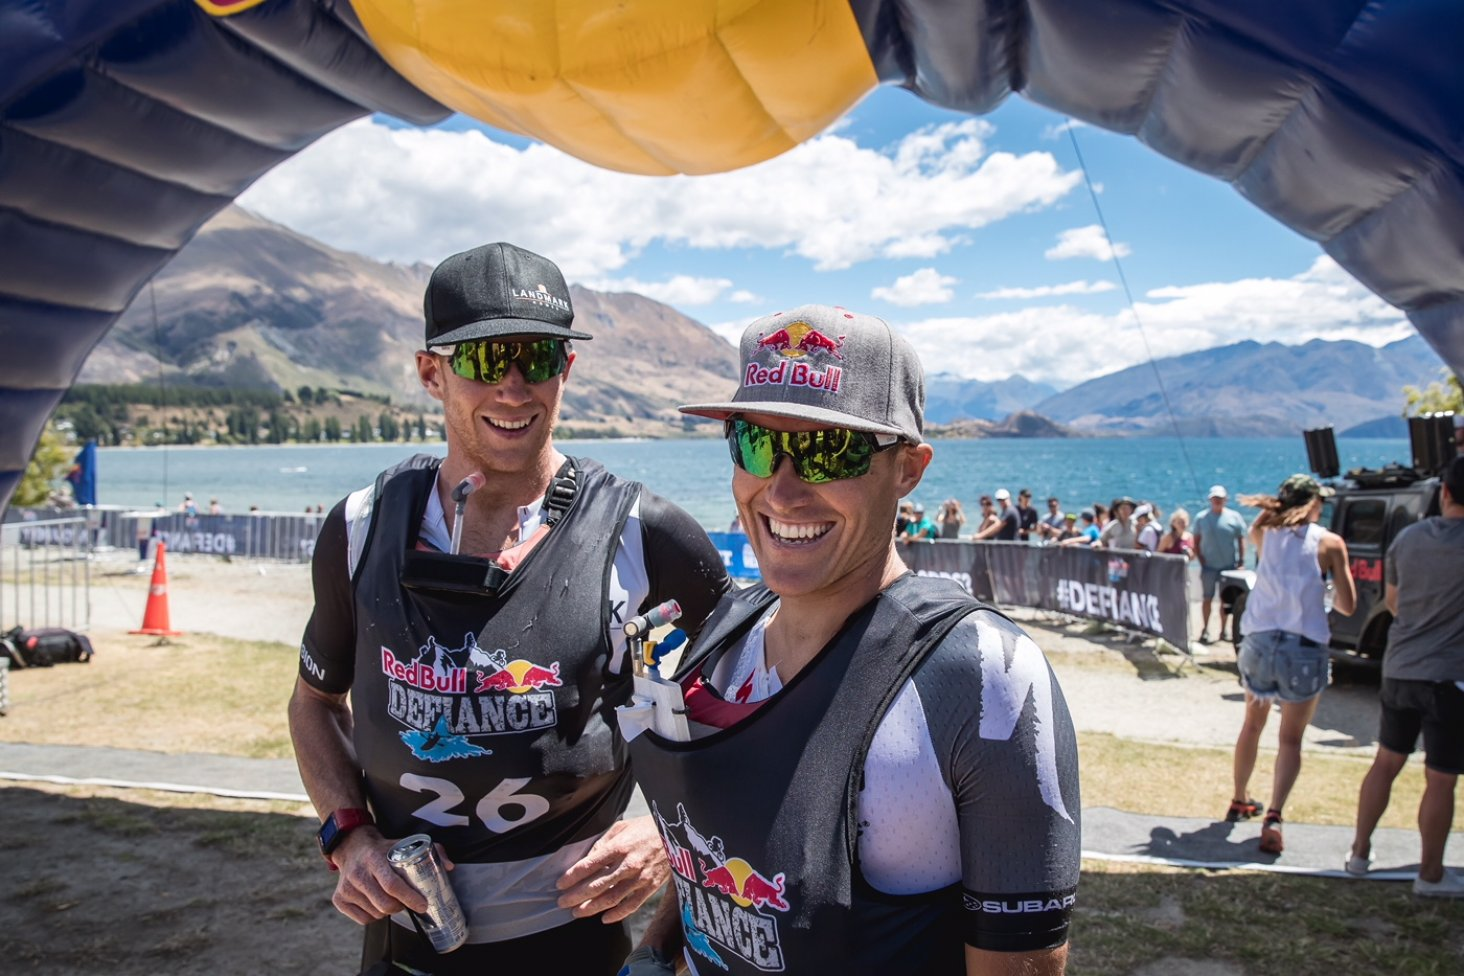 Team mates Dougal Allan (left) and Subaru Brand Ambassador Braden Currie won the 2018 Red Bull Defiance, two-day multi-sport race in Wanaka, this weekend. PHOTO: MILES HOLDEN